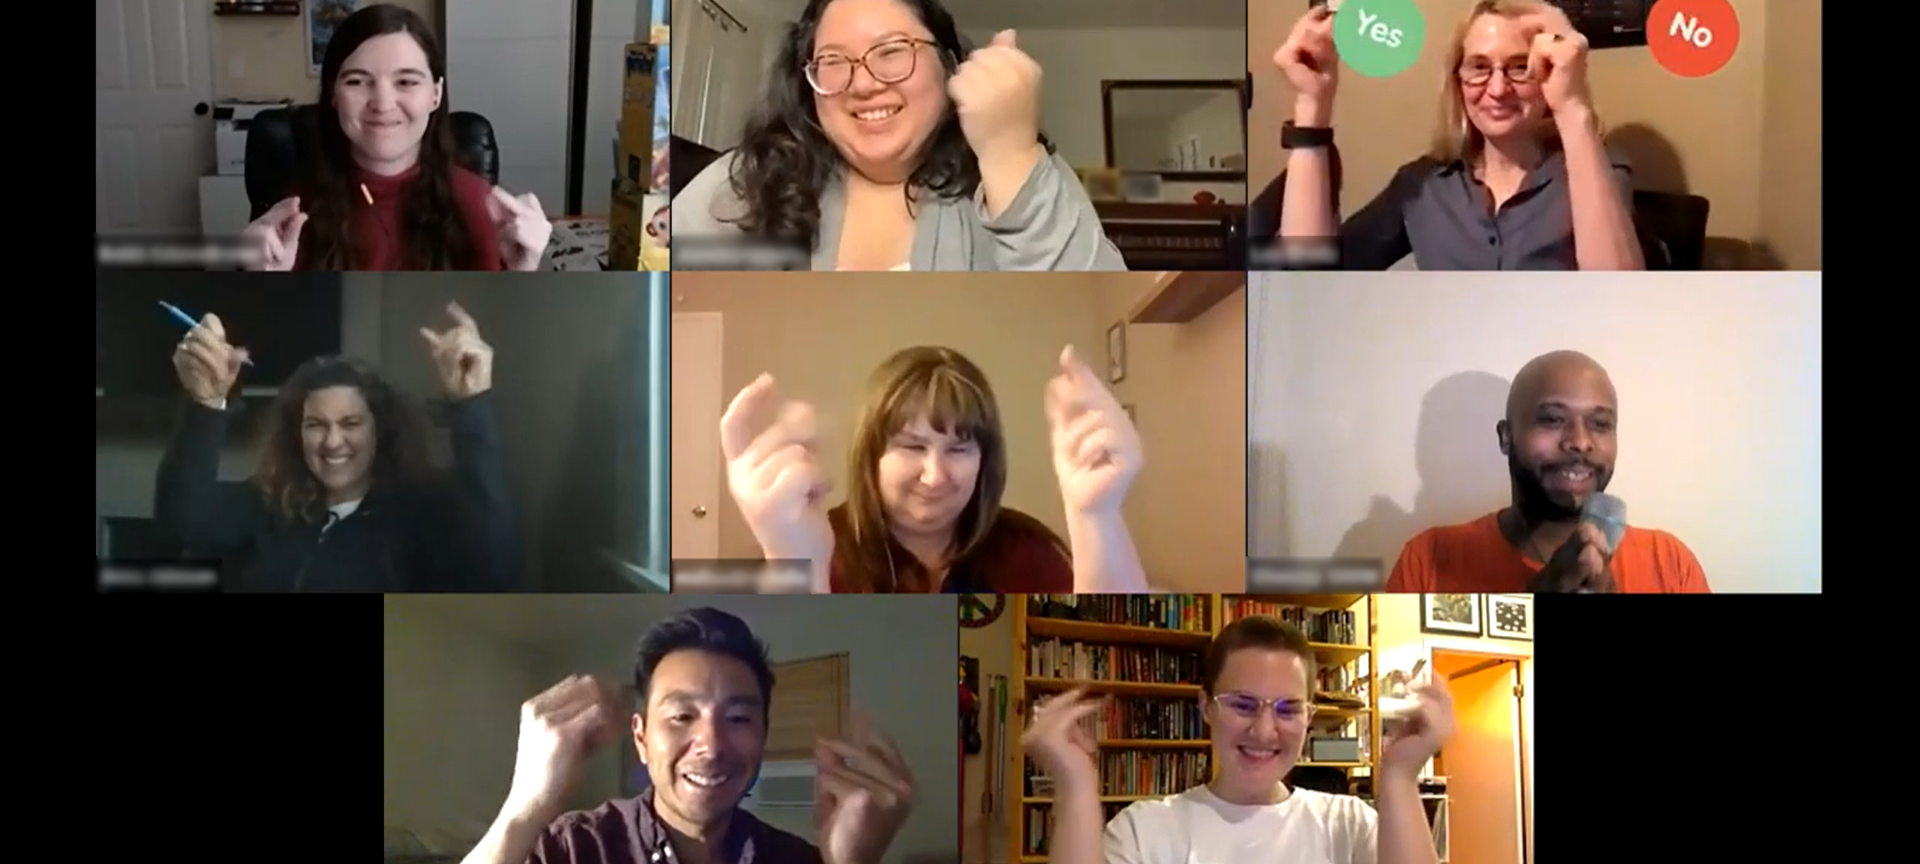 Still image from a BEAT-led Zoom workshop in which 8 individuals of different racial and gender identities snap their fingers and smile.